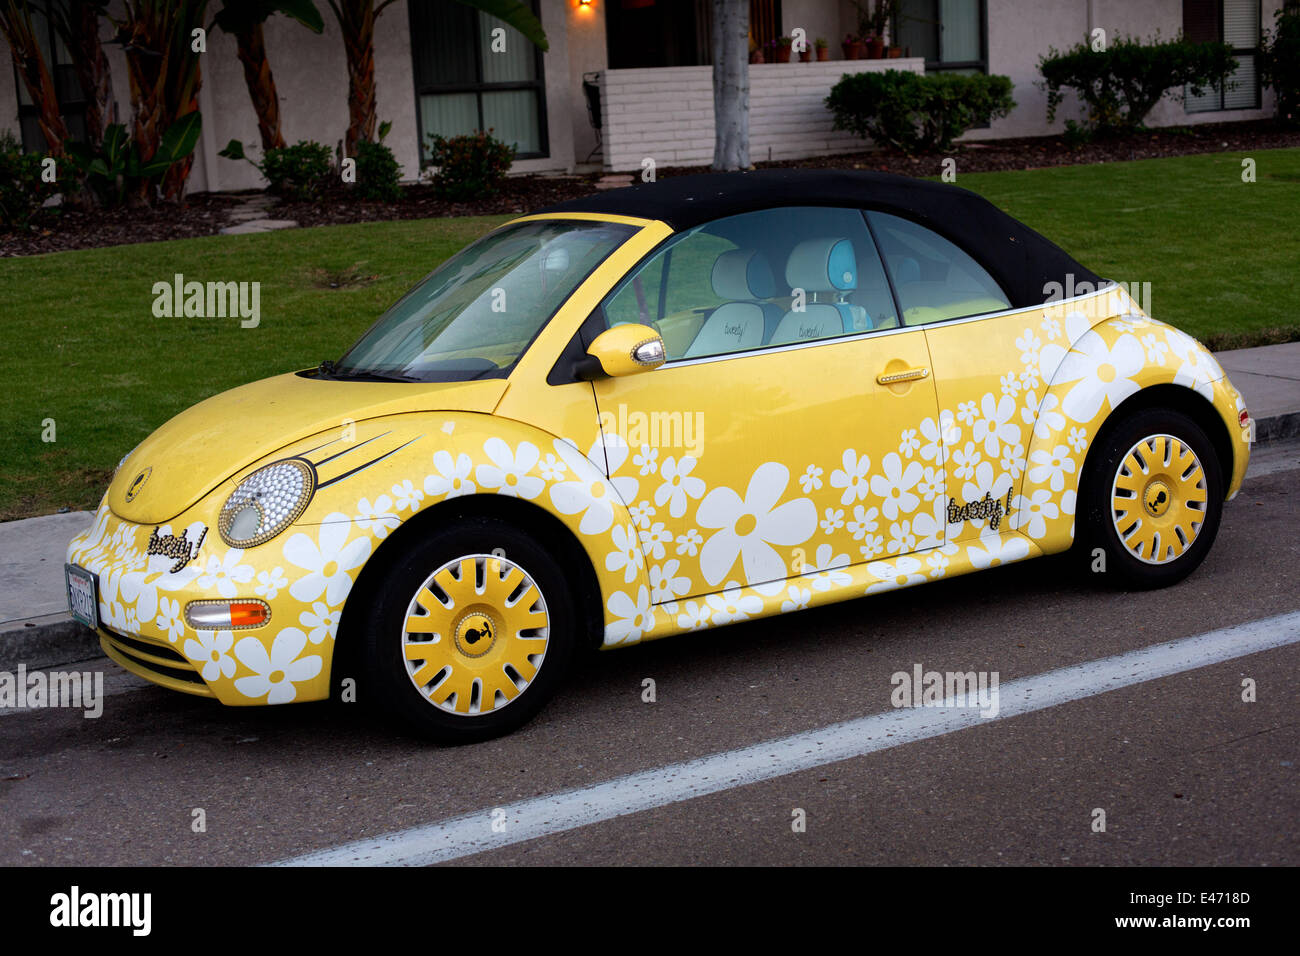 Tweety Version Of A Vw Beetle With Flower Decoration And Stock